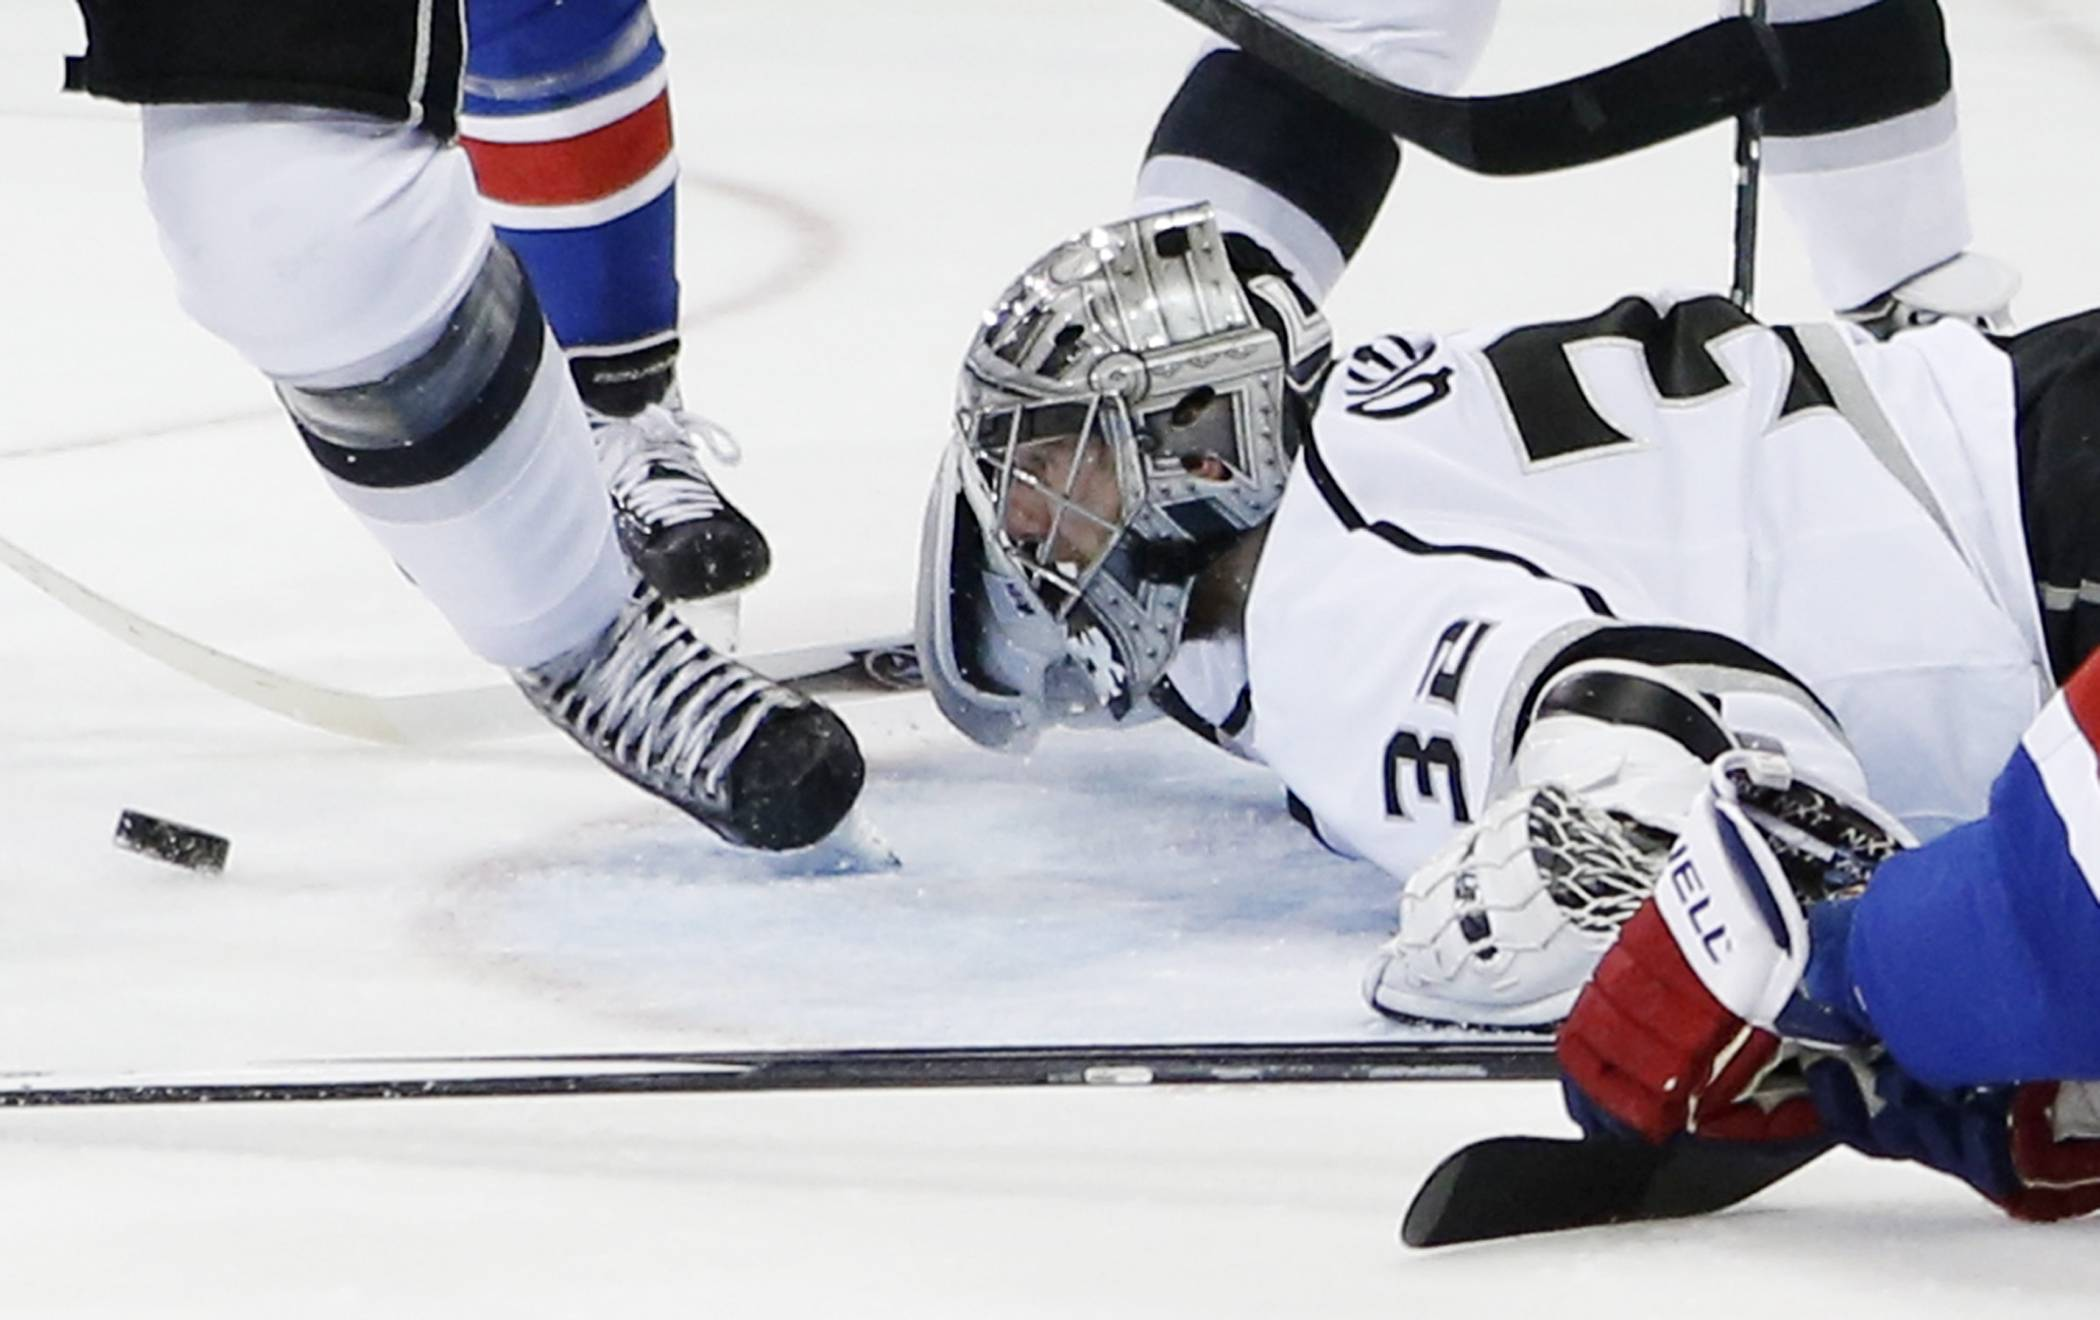 Los Angeles Kings goalie Jonathan Quick follows the rebound after blocking a shot against the New York Rangers in the second period Monday during Game 3 of the Stanley Cup Finals in New York.